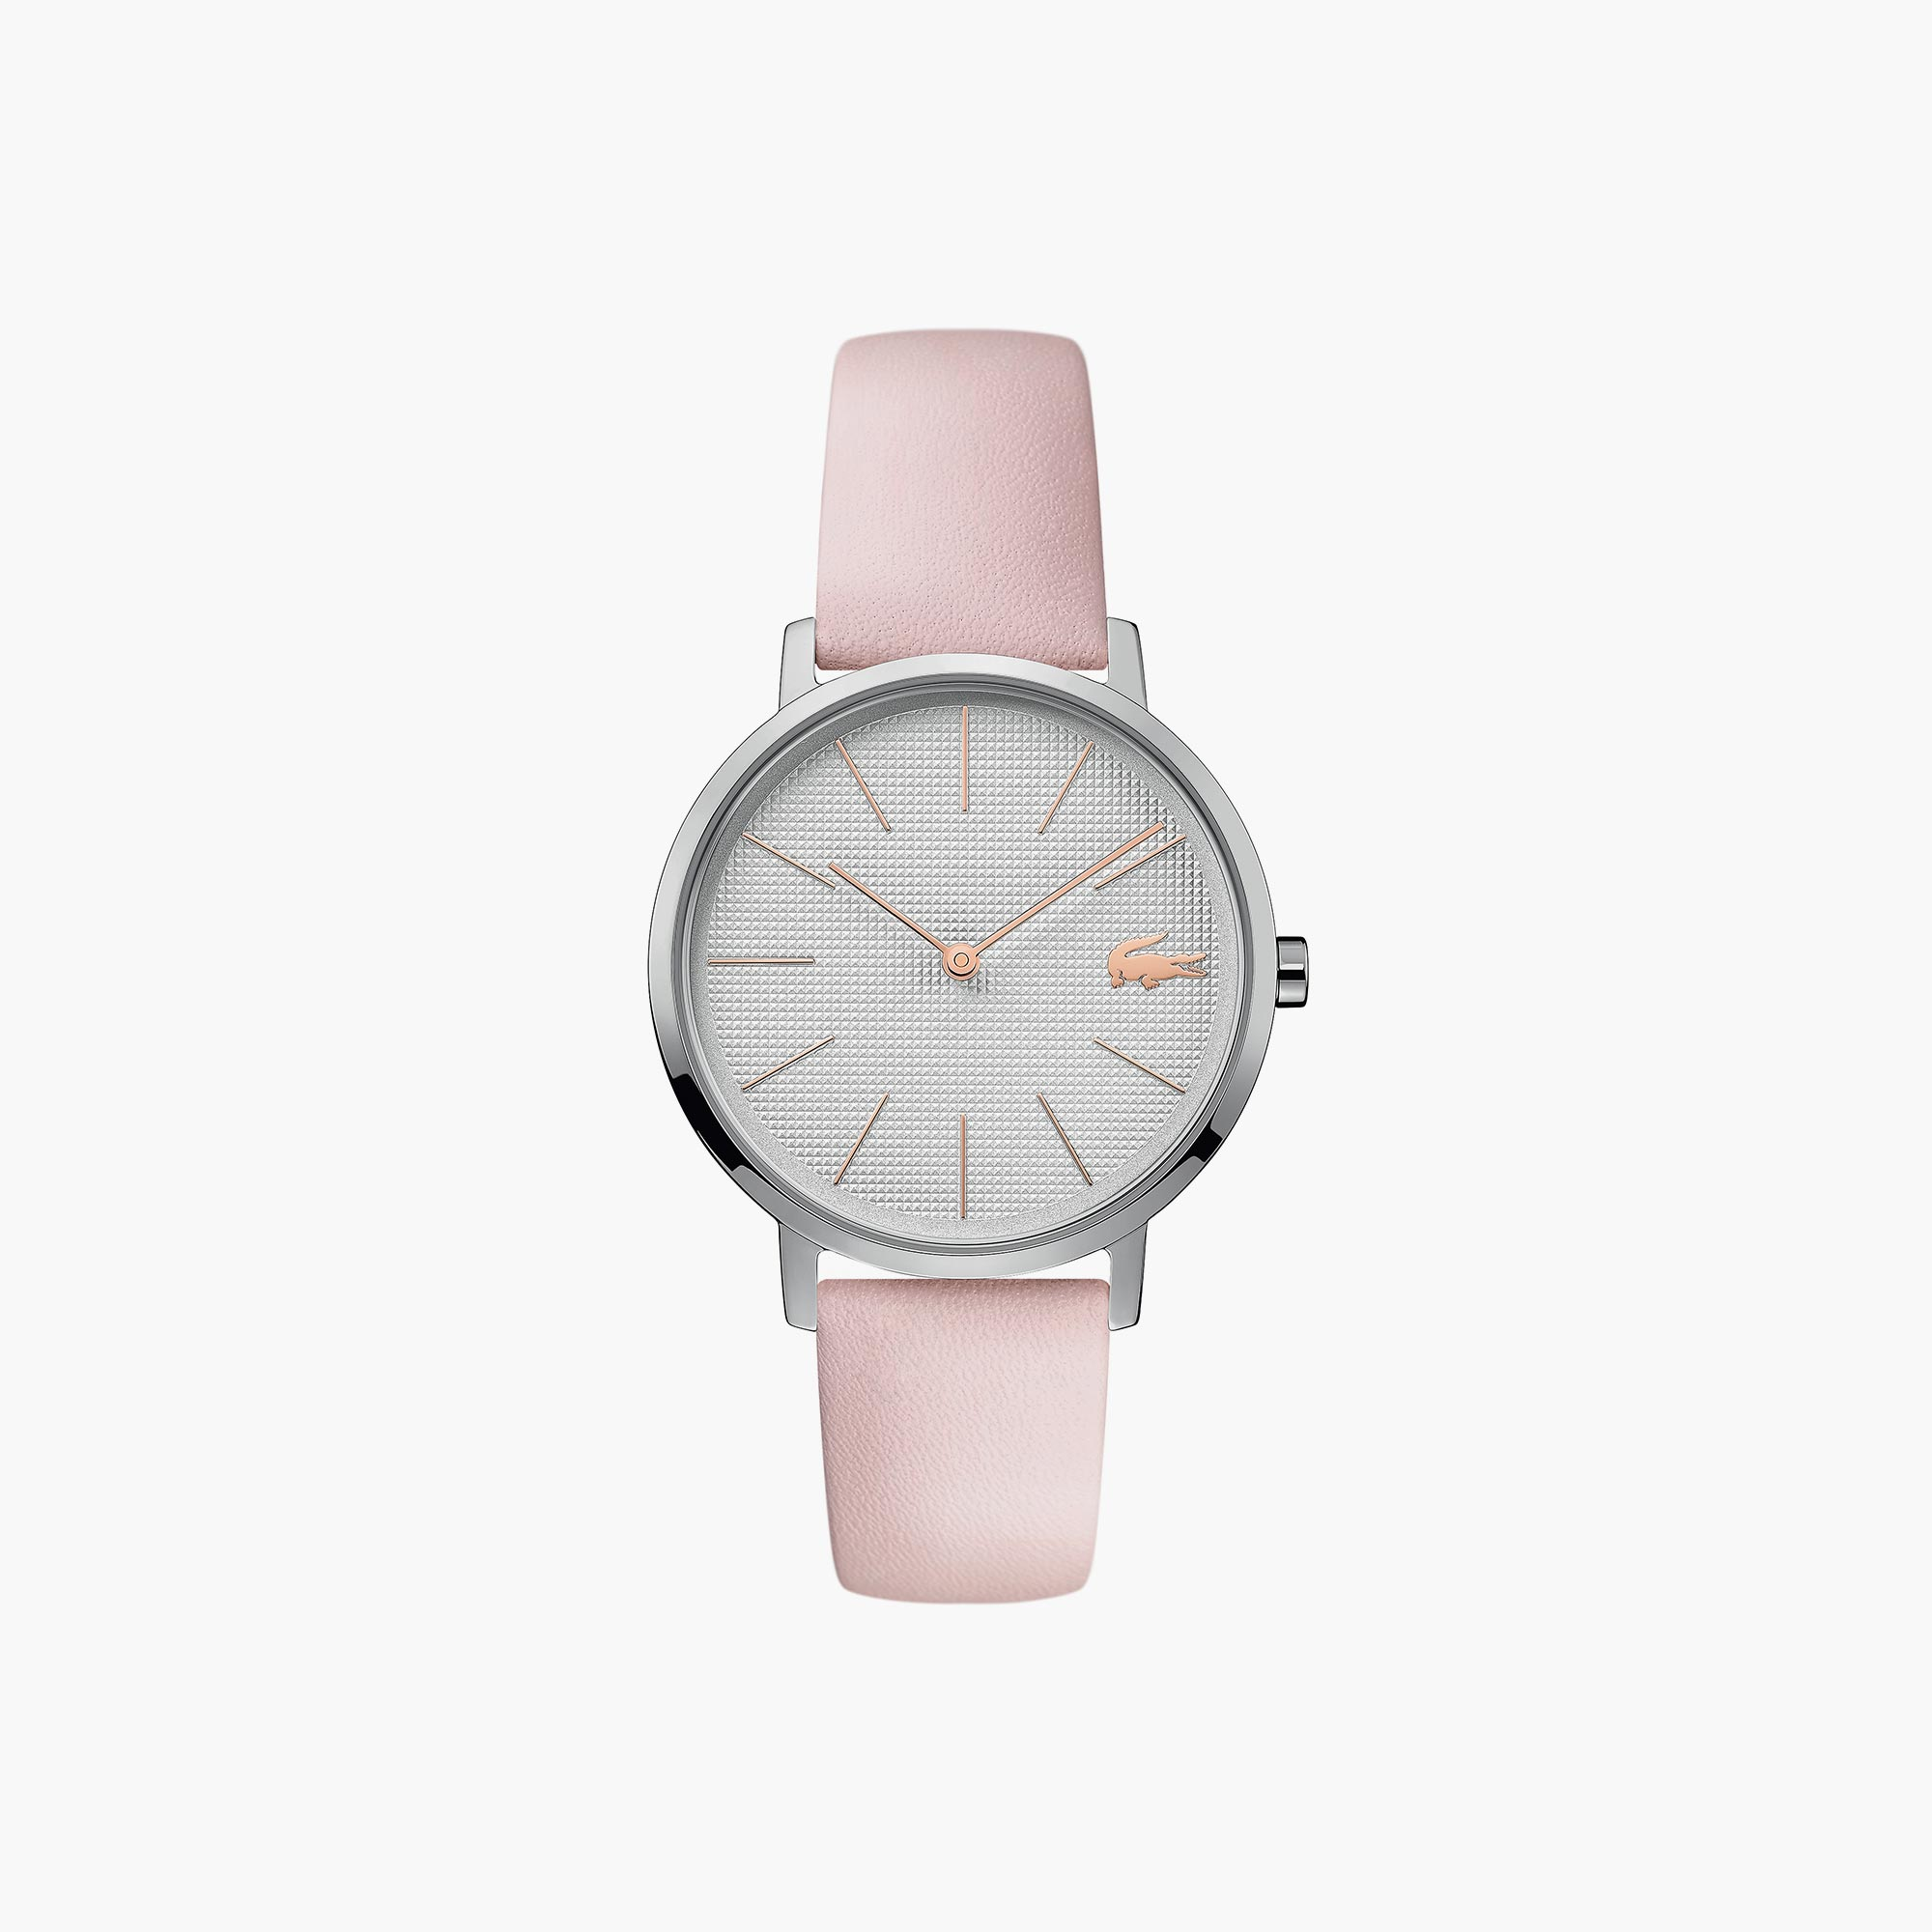 Ladies Moon Watch with Pink Leather Strap